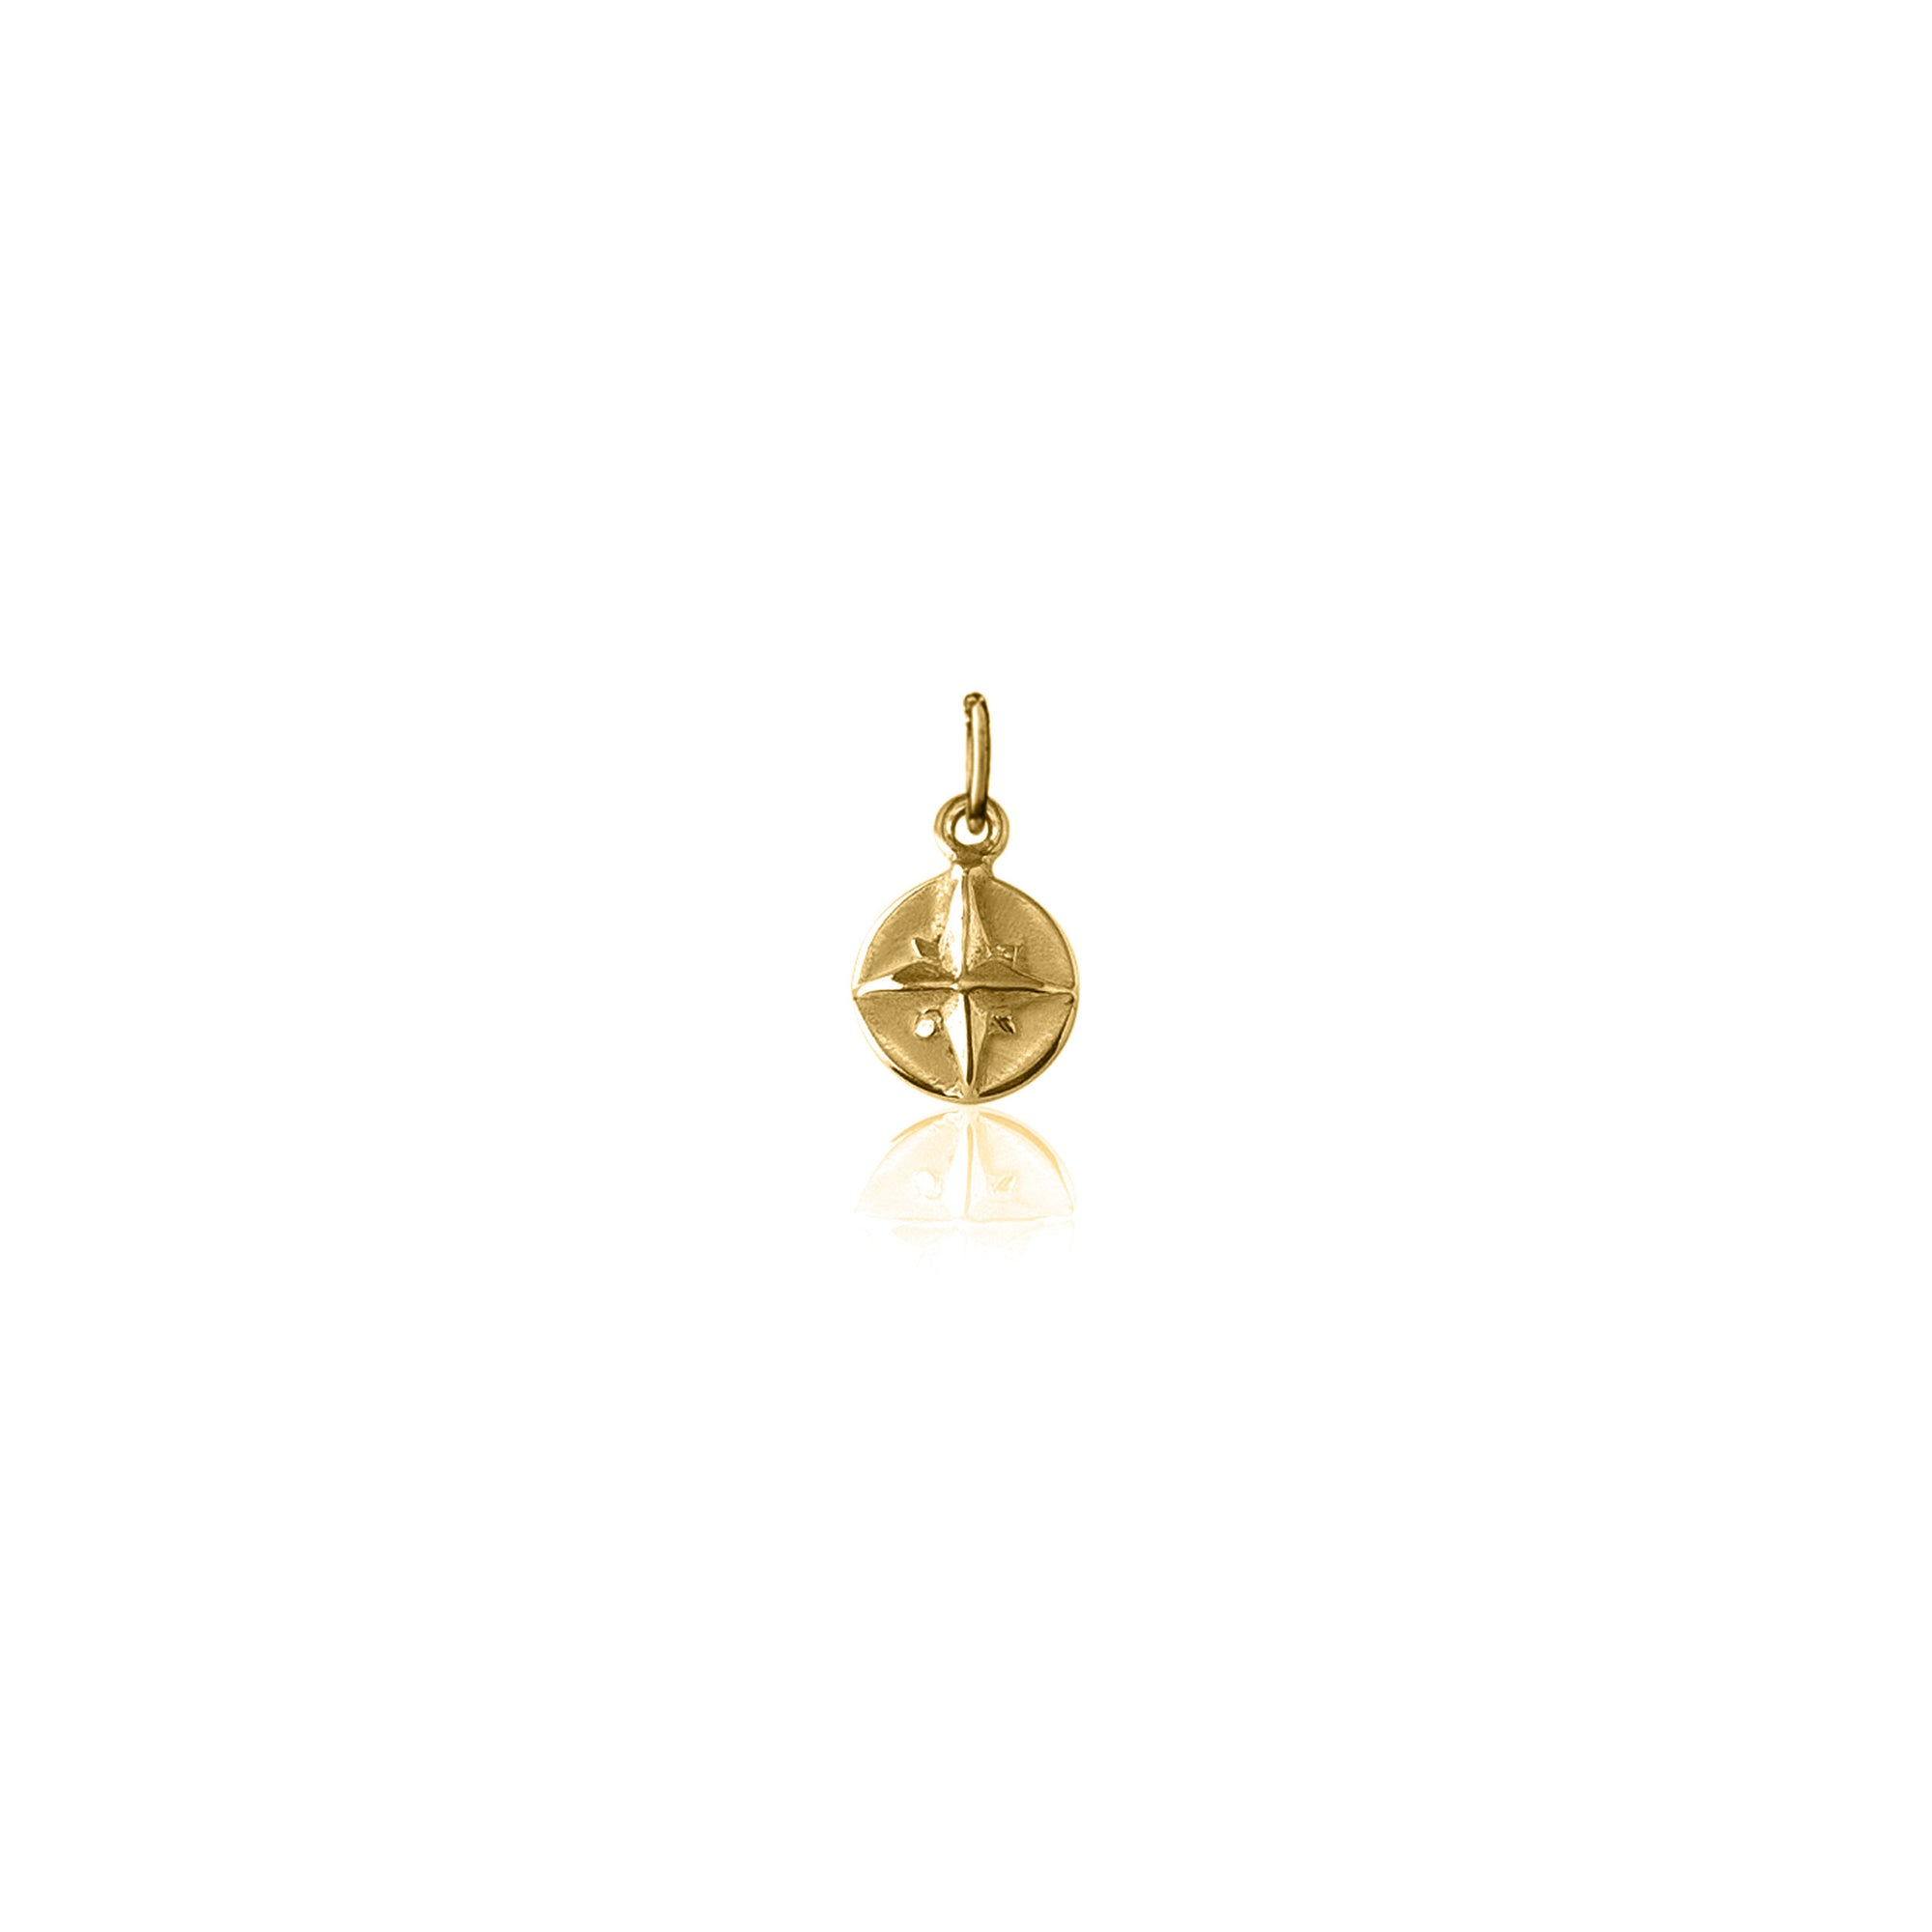 Born to roam Charm (Gold)